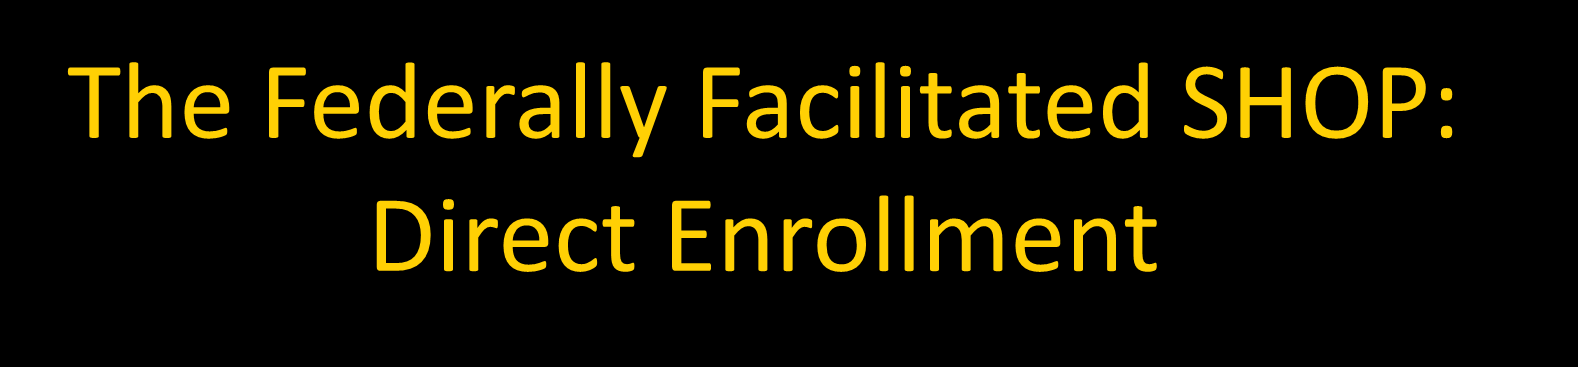 The Federally Facilitated SHOP: Direct Enrollment Much like what many small employers do today Work with an agent, broker or insurance company to: Learn about offerings o Can also use new tools on